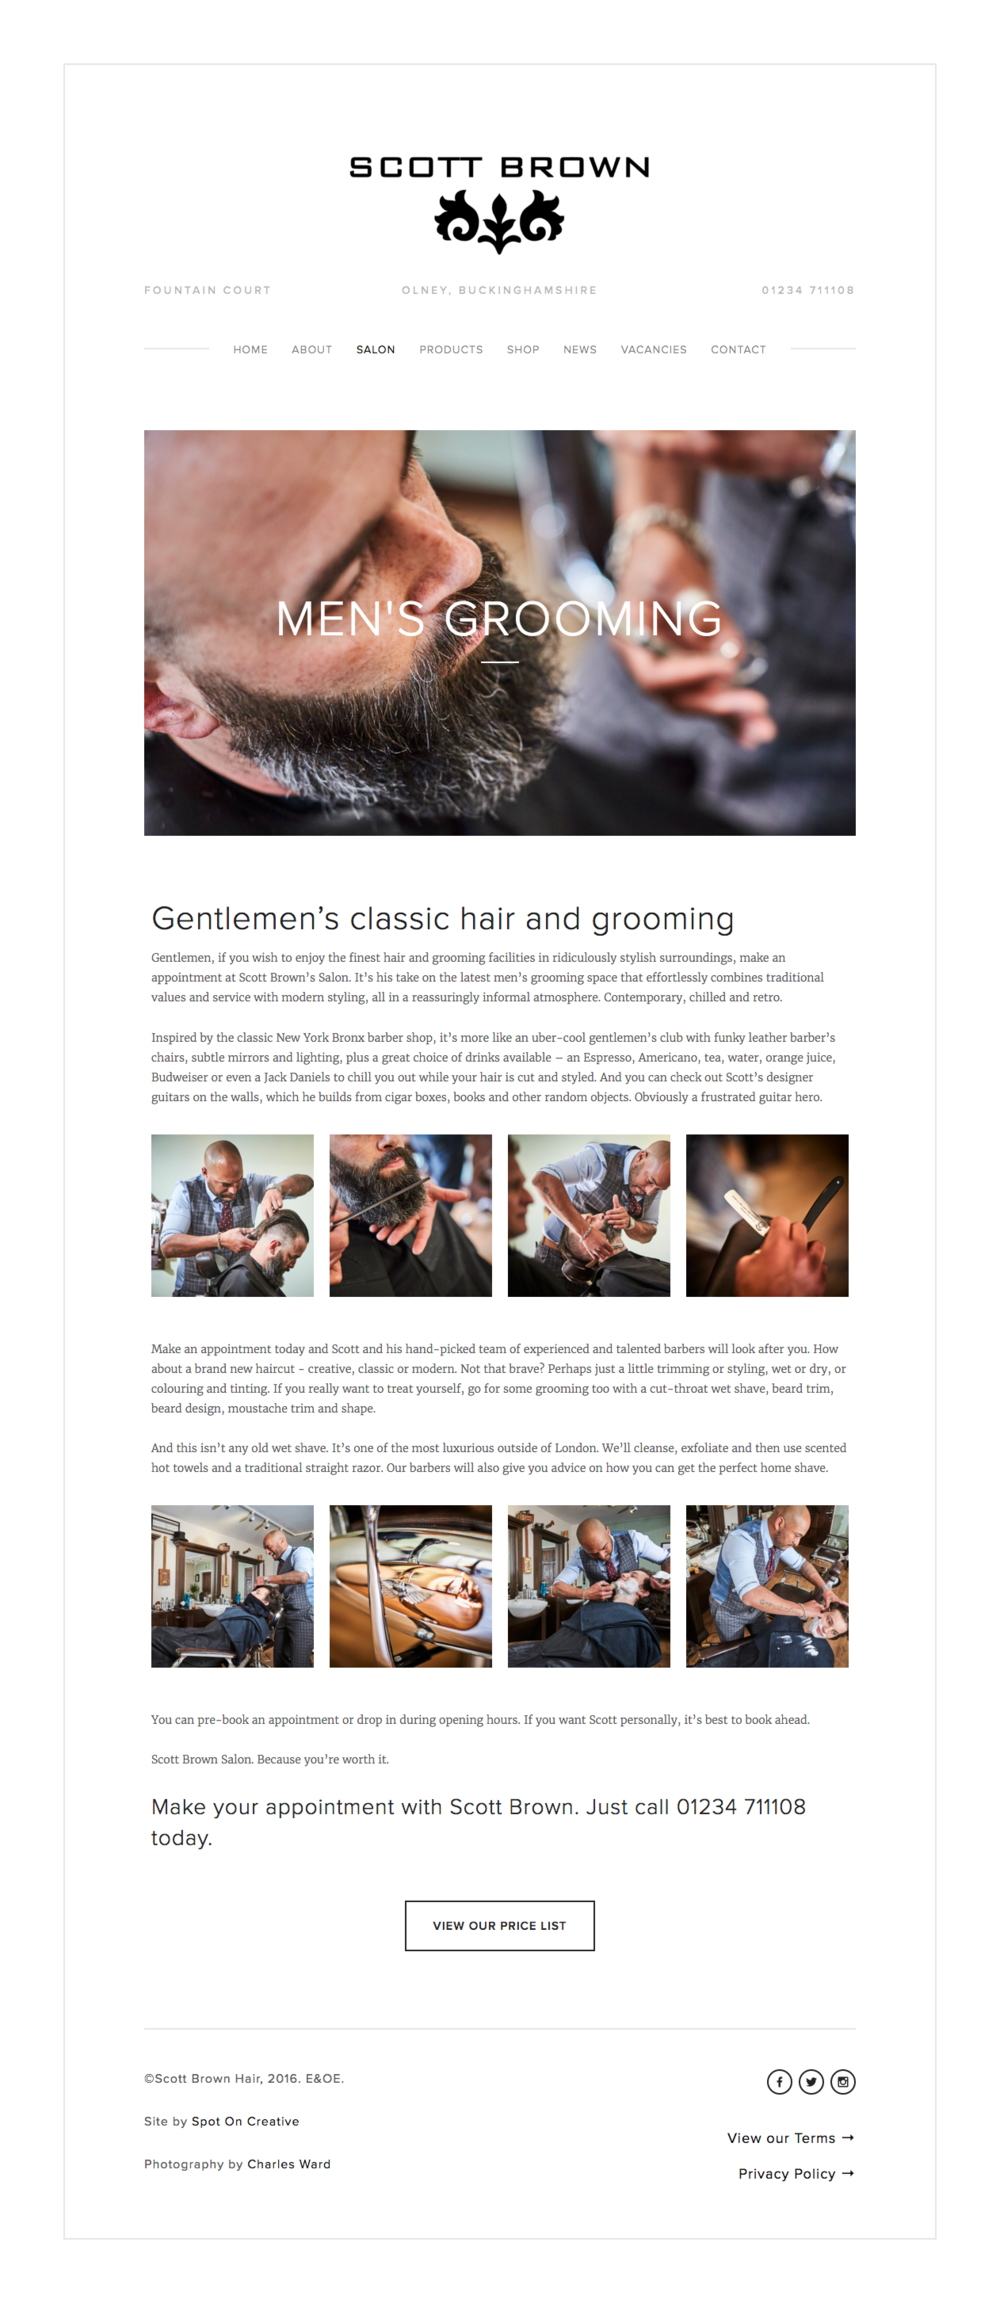 04. Scott-Brown-mens-grooming.png